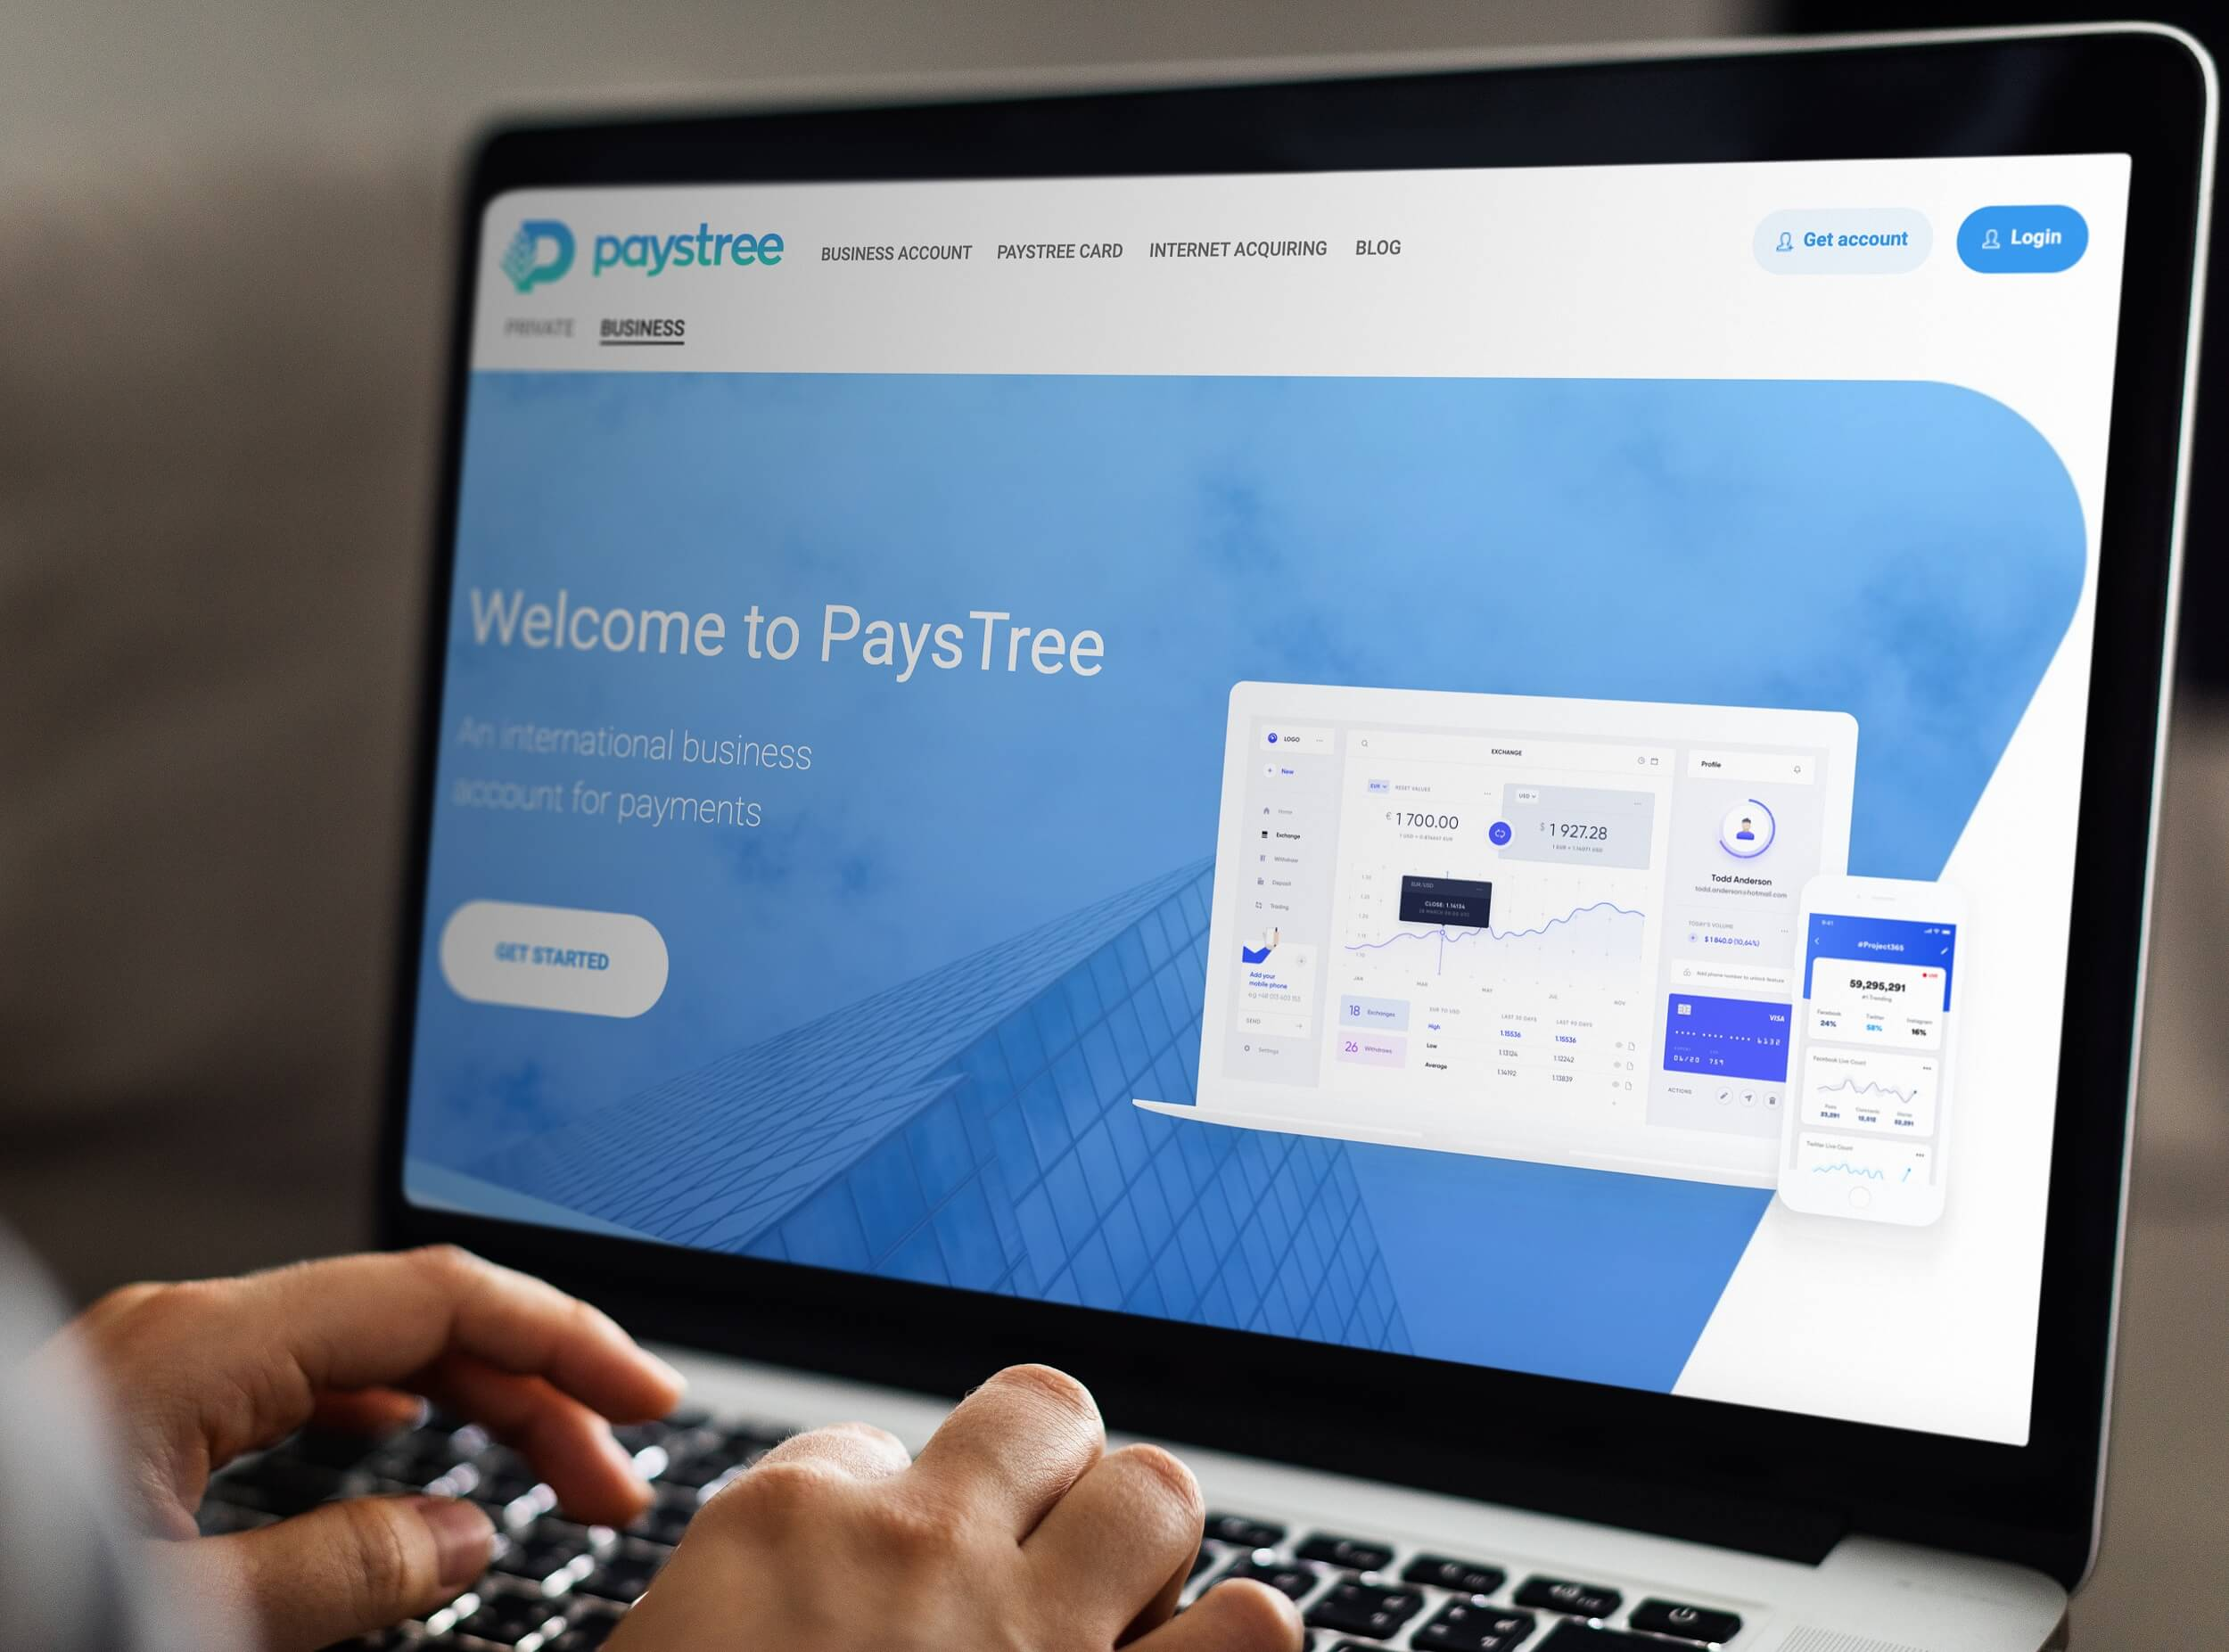 How to open an account with PaysTree?